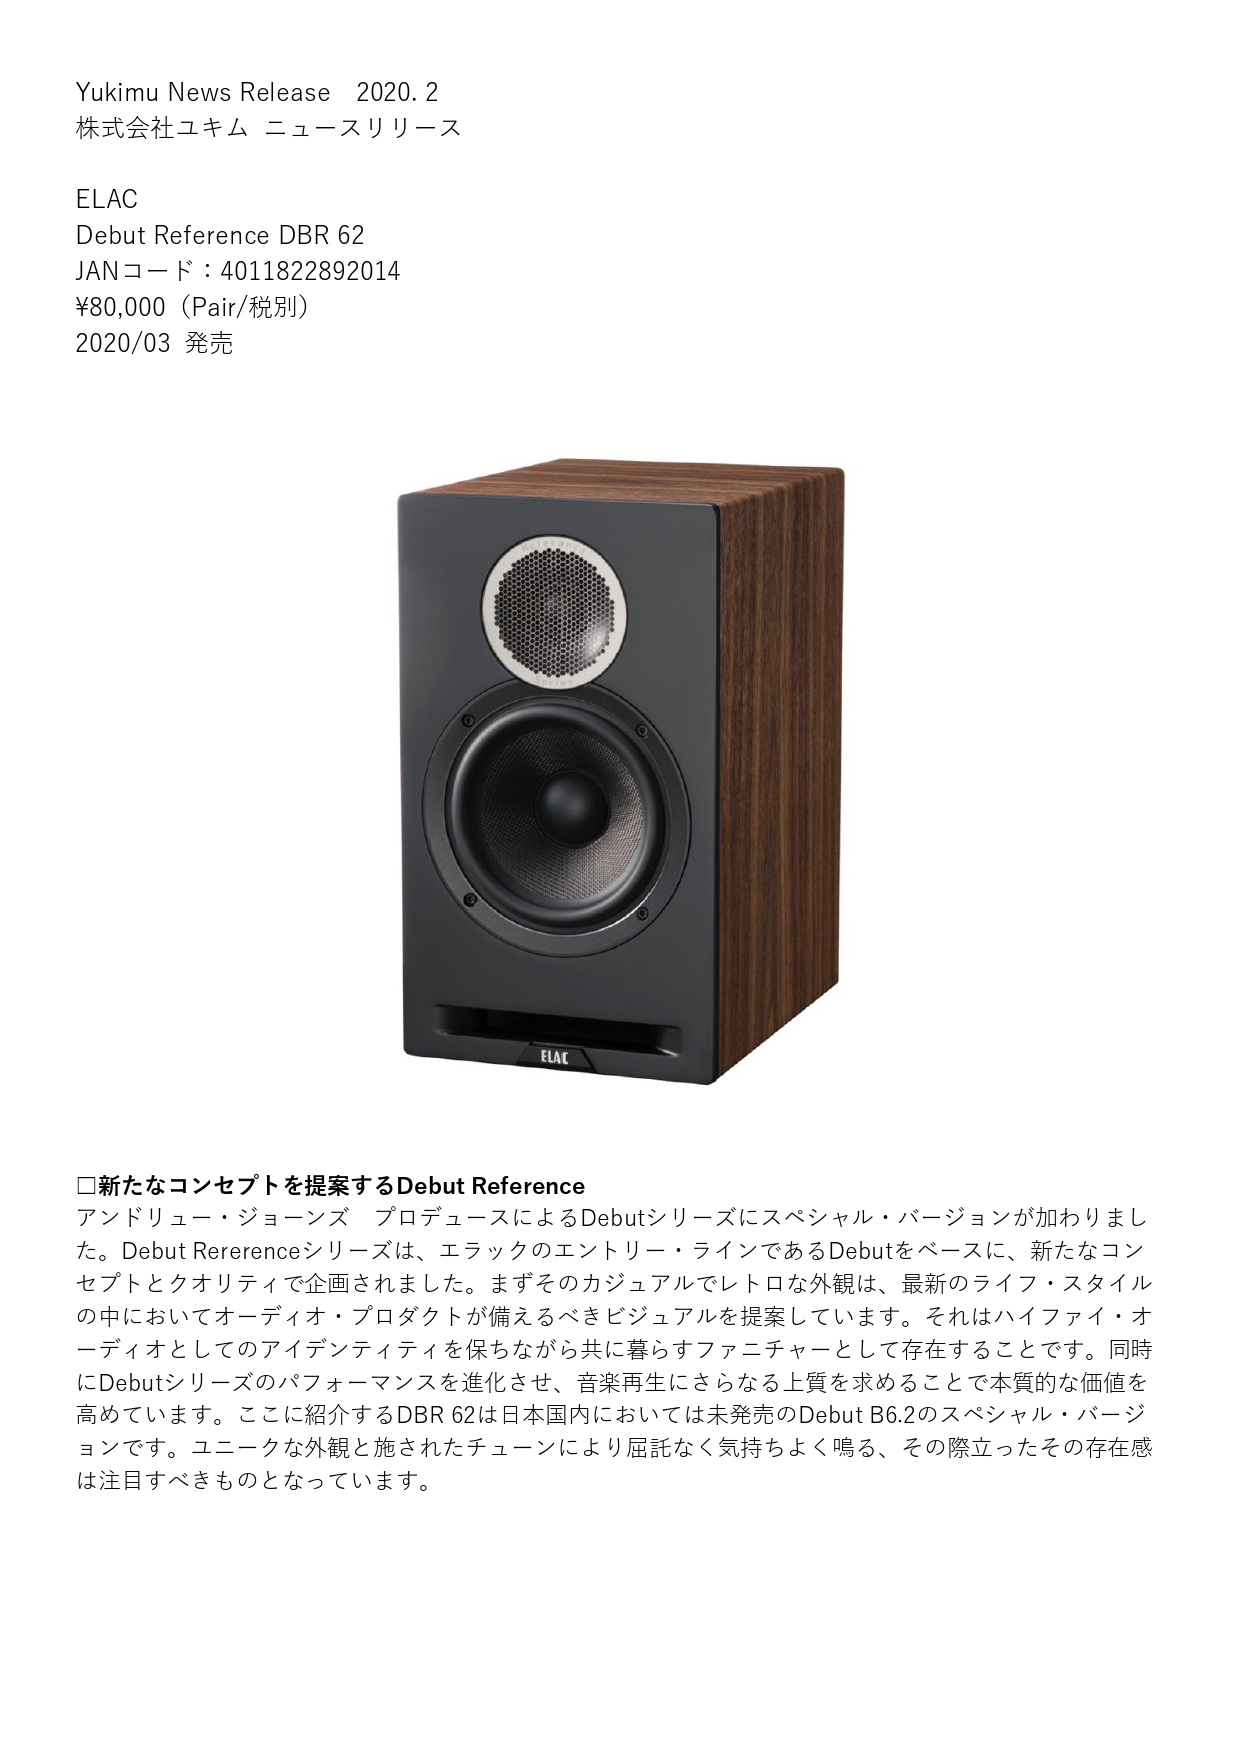 200214Debut Reference DBR62リリース_page-0001